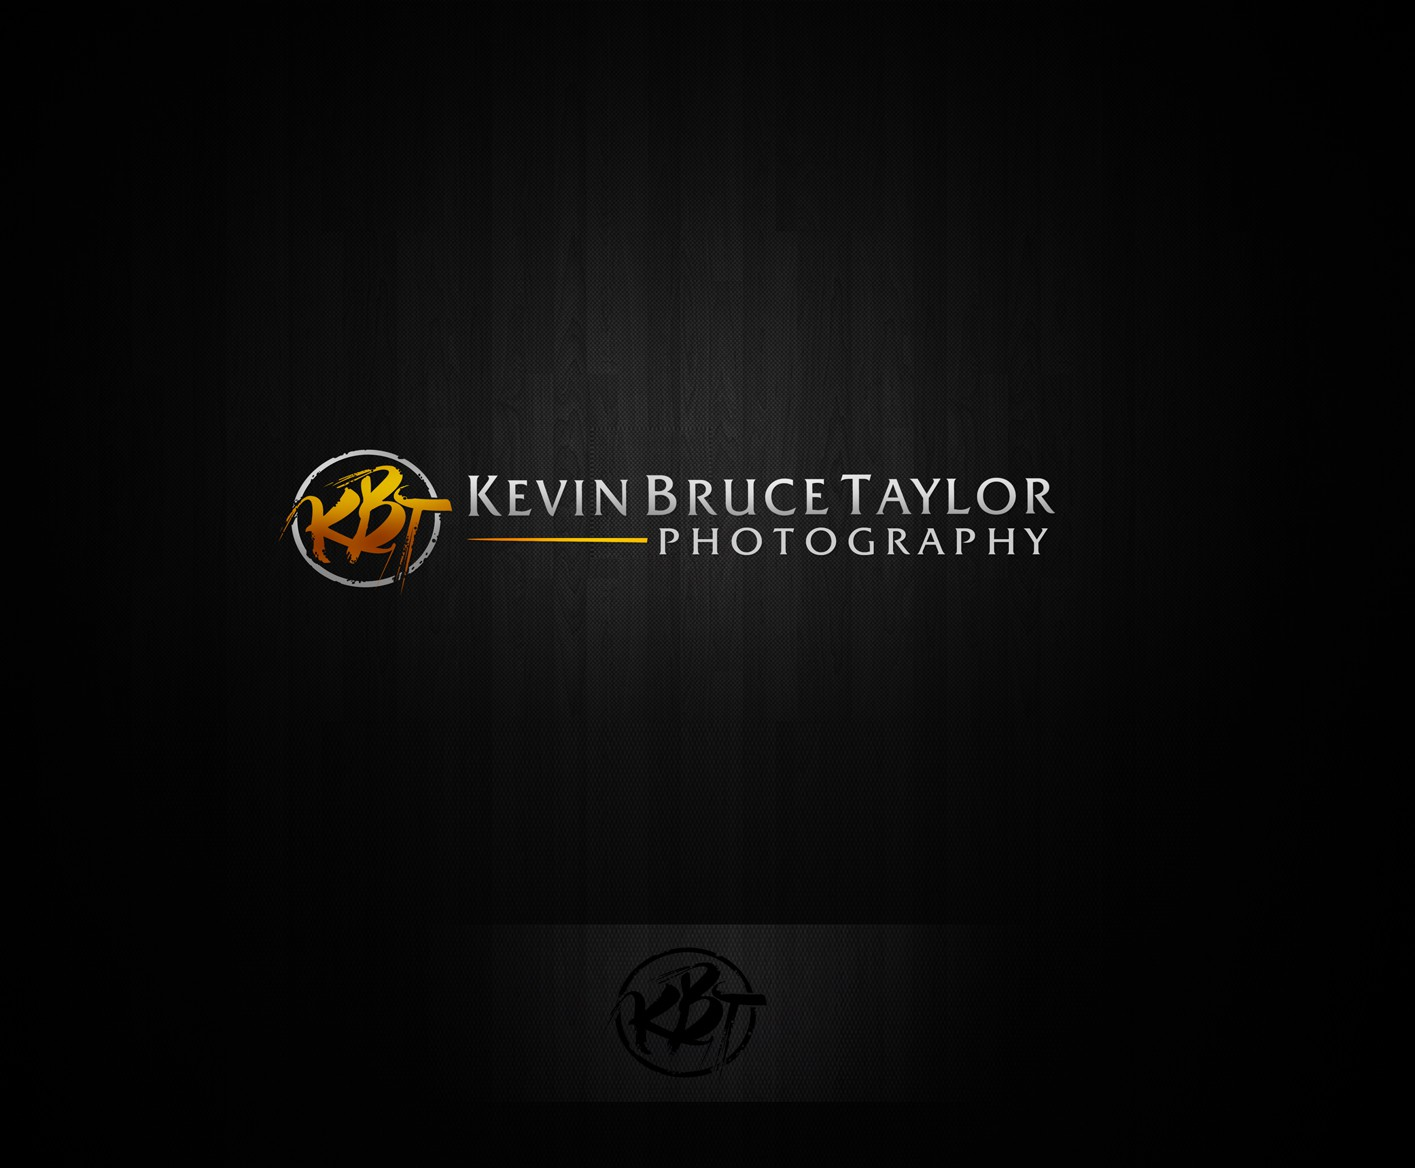 New logo wanted for Kevin Bruce Taylor Photography